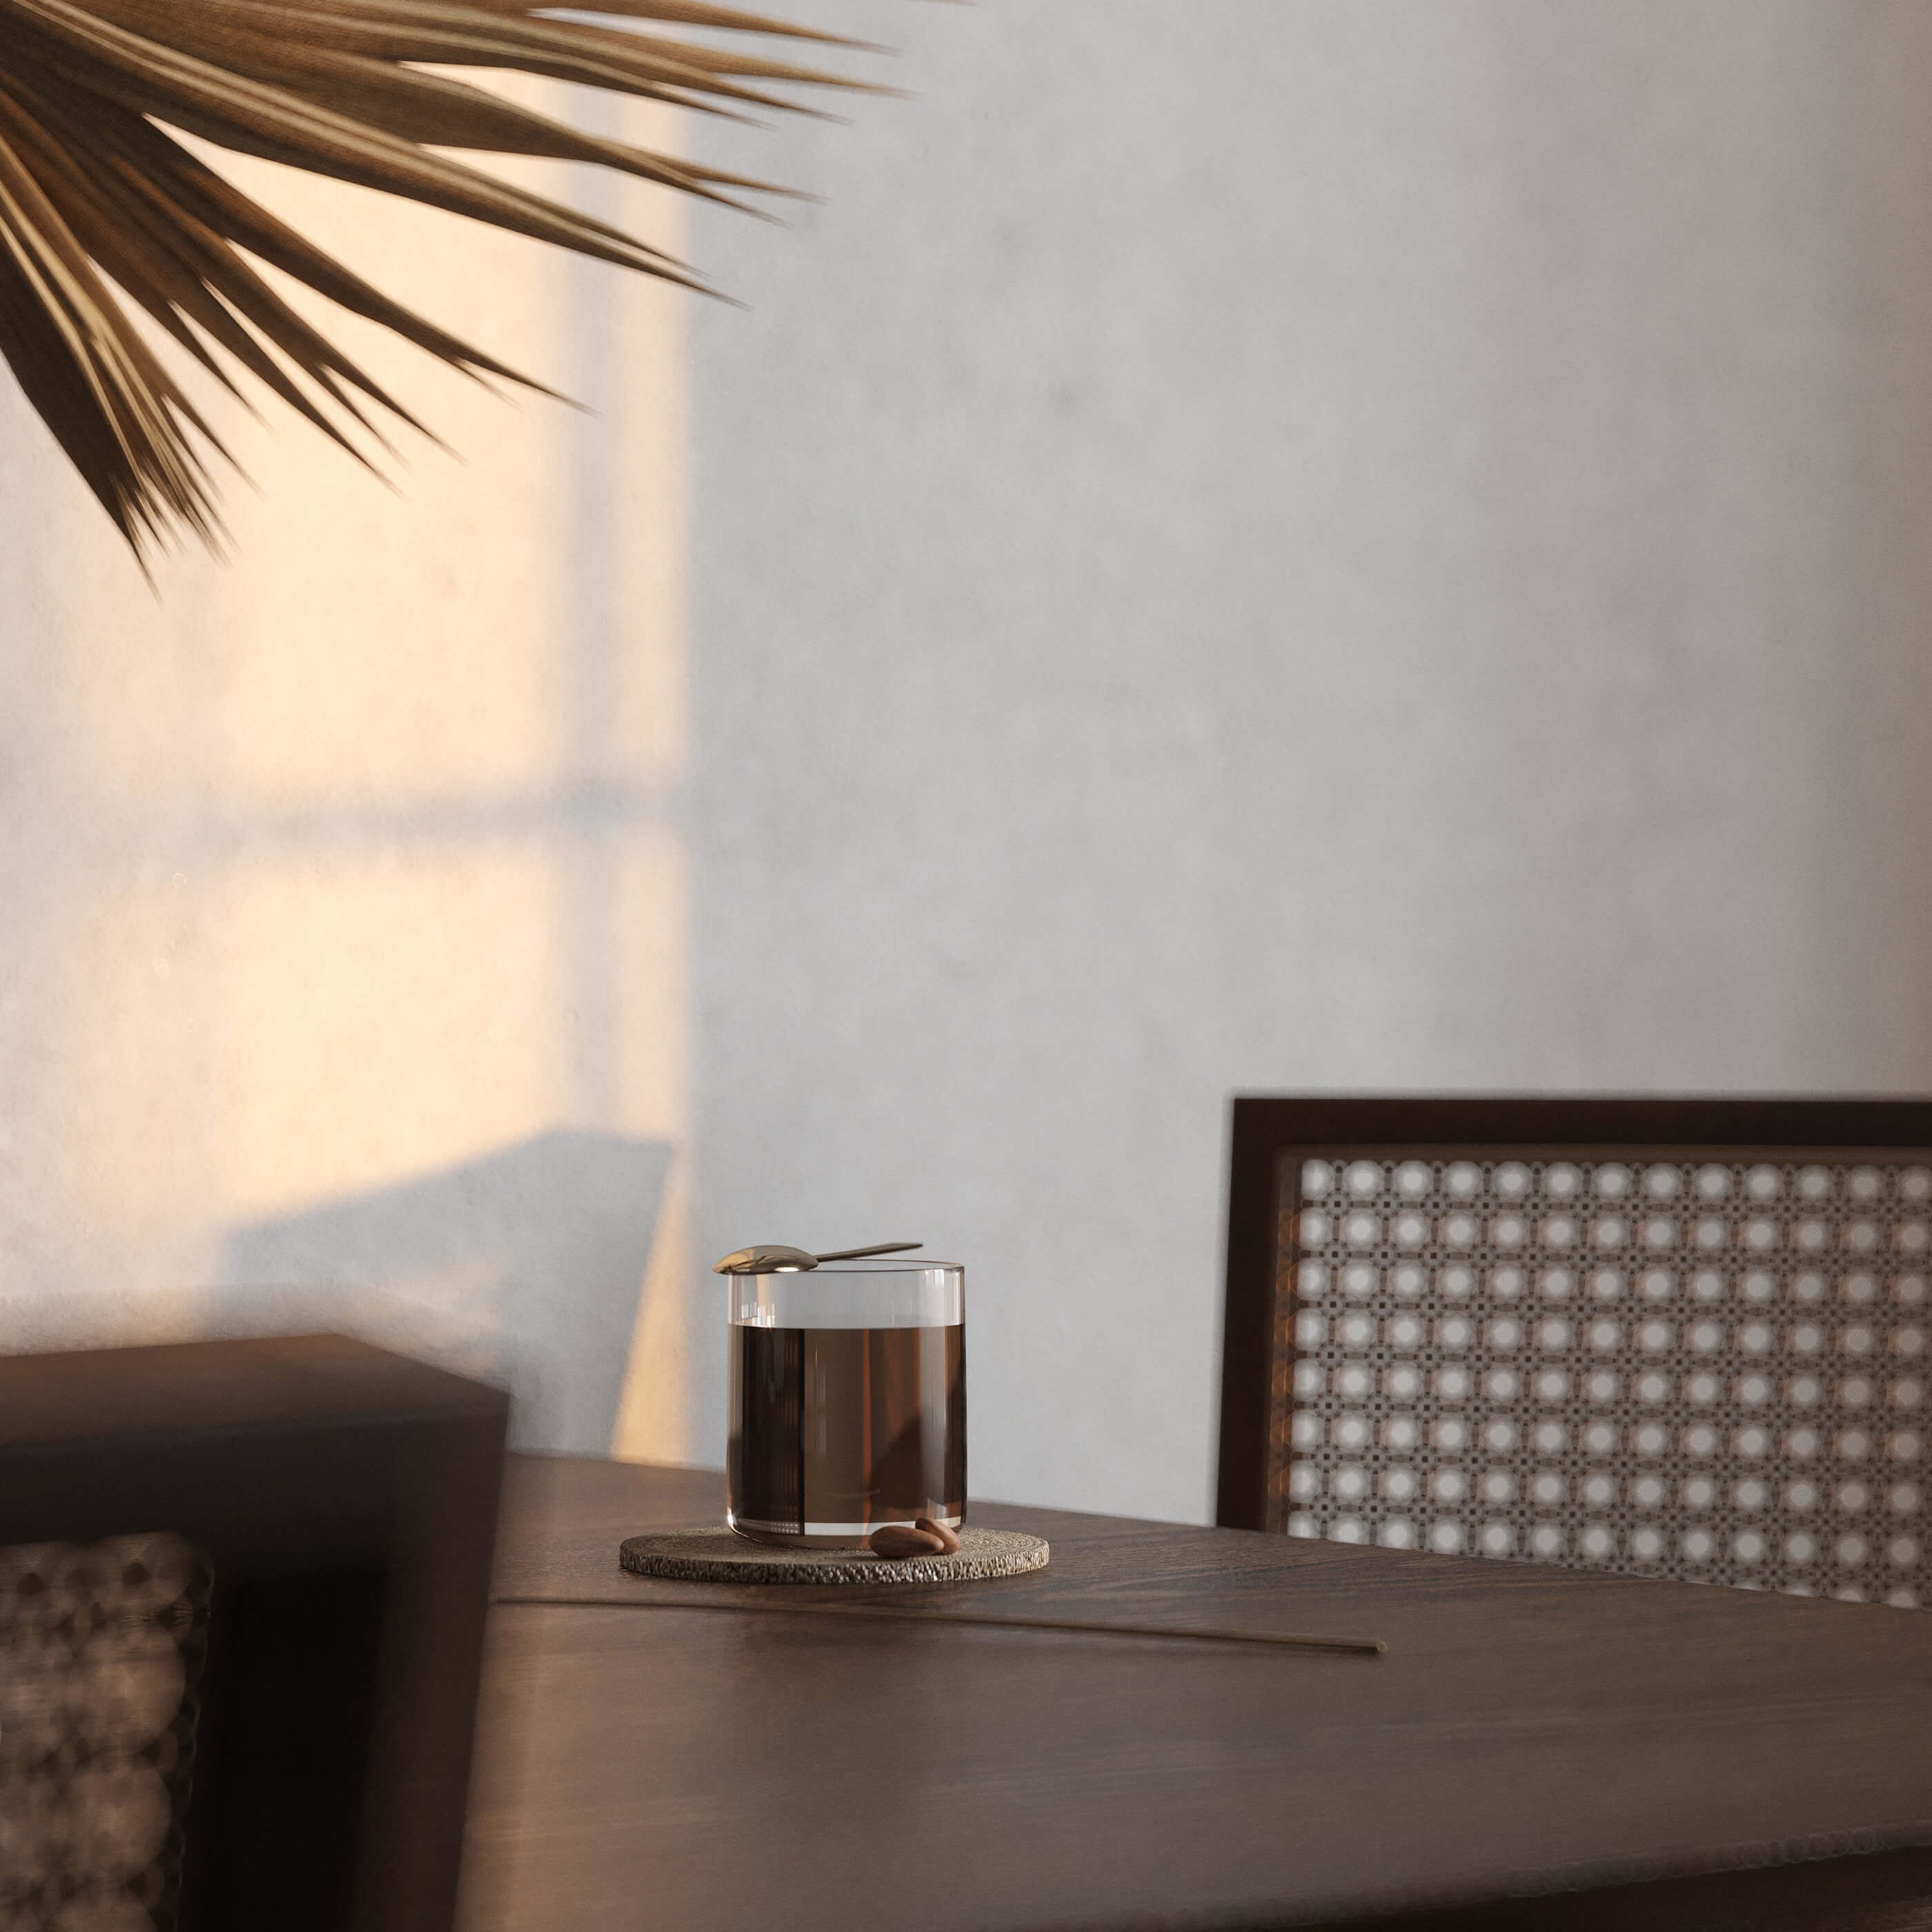 Sunset shoot wood table tea - cgi visualization